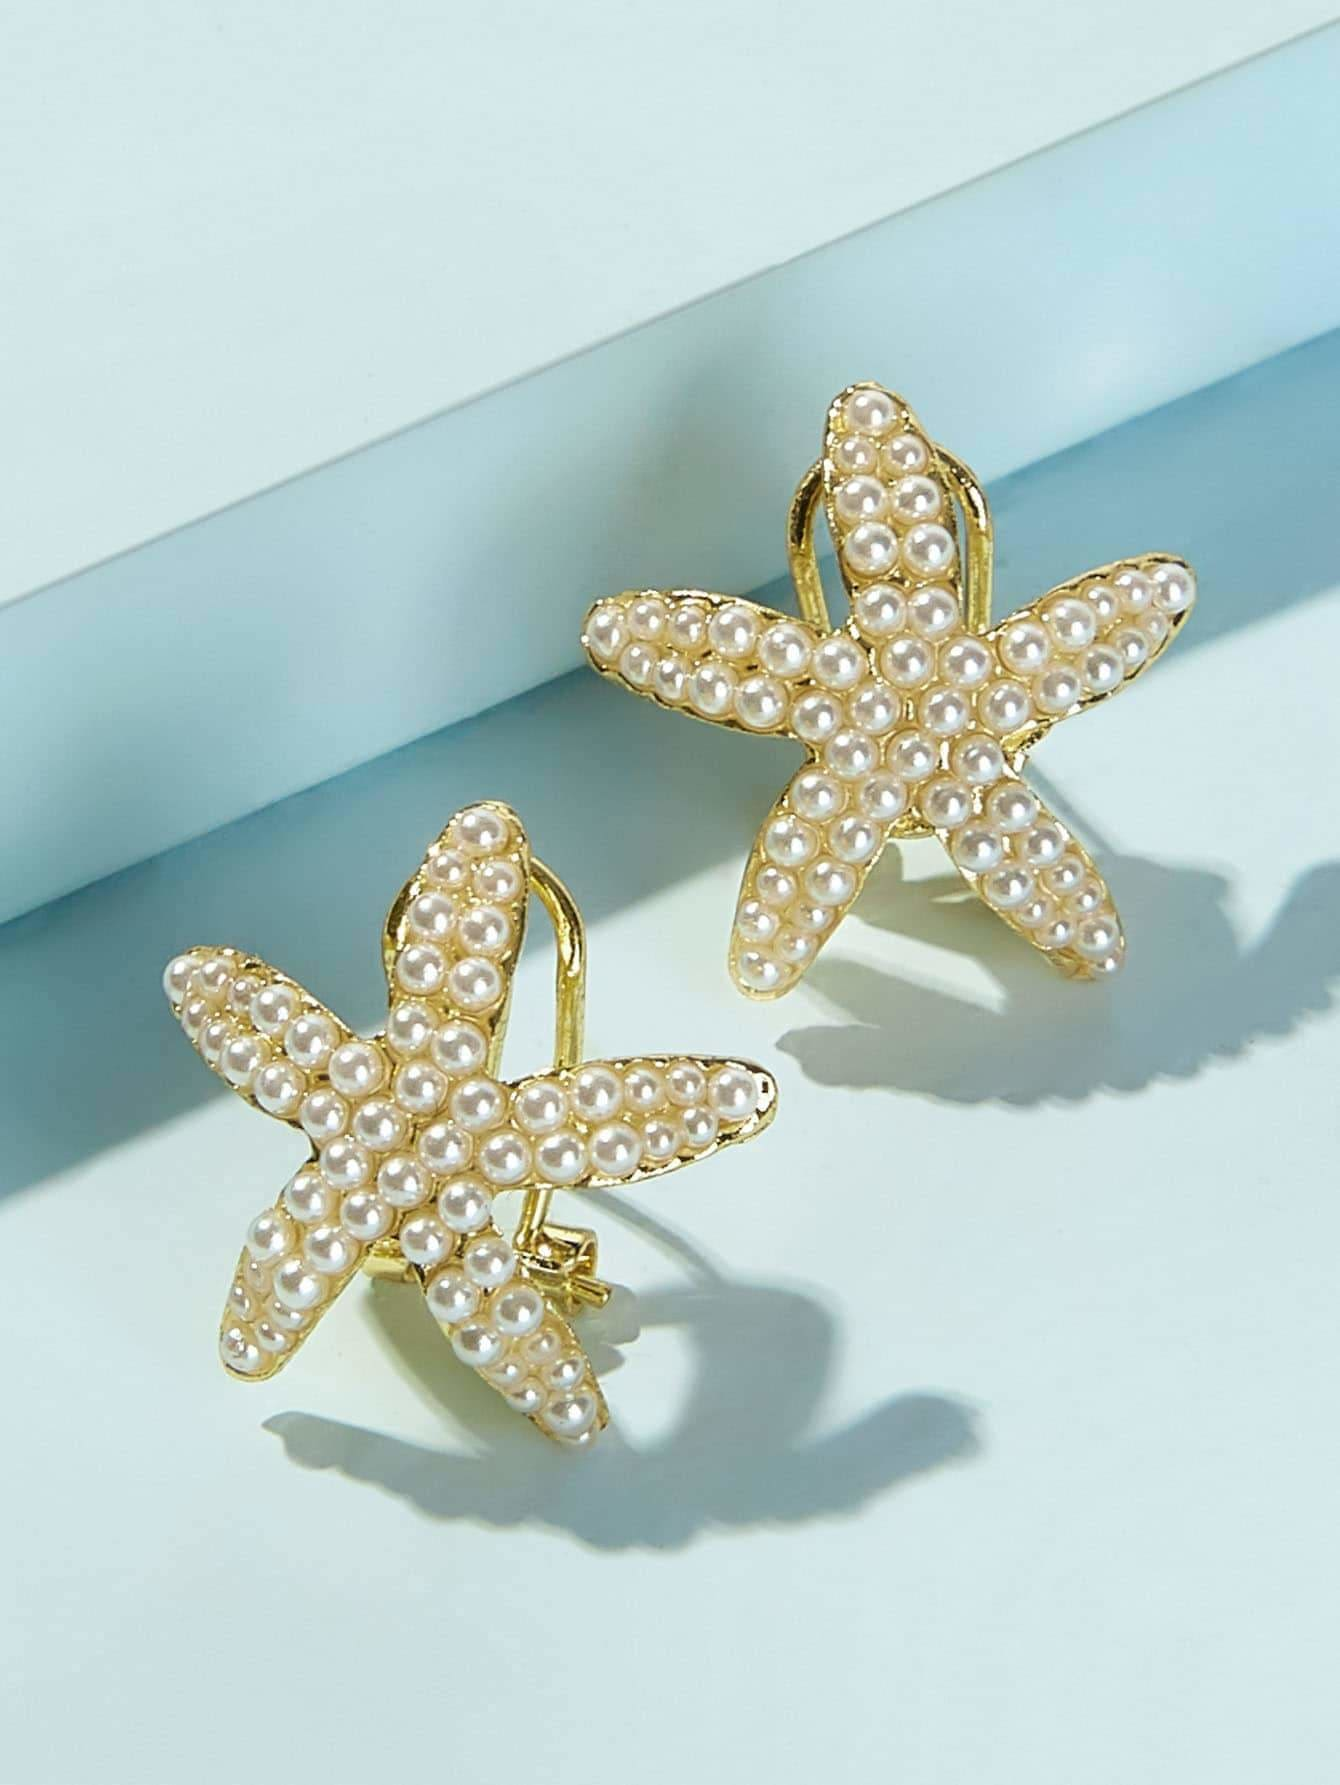 Faux Pearl Decor Starfish Stud Earrings 1pair - Earrings